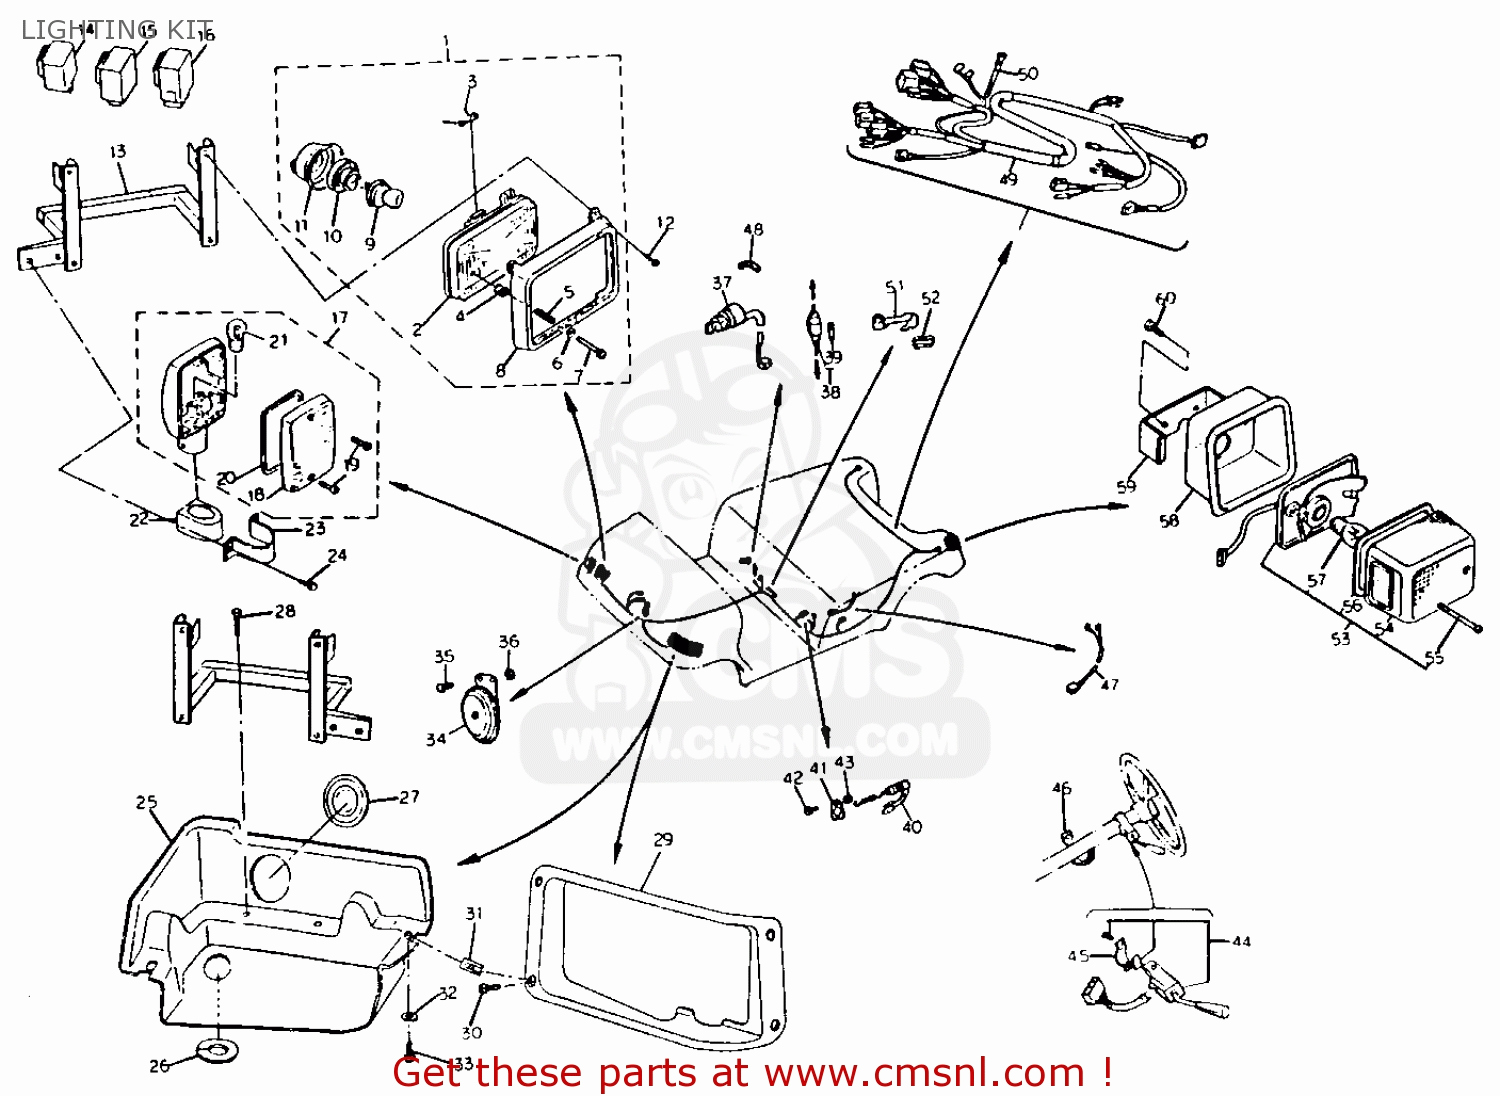 hight resolution of 1500x1096 ezgo robin engine diagram engine parts drawing